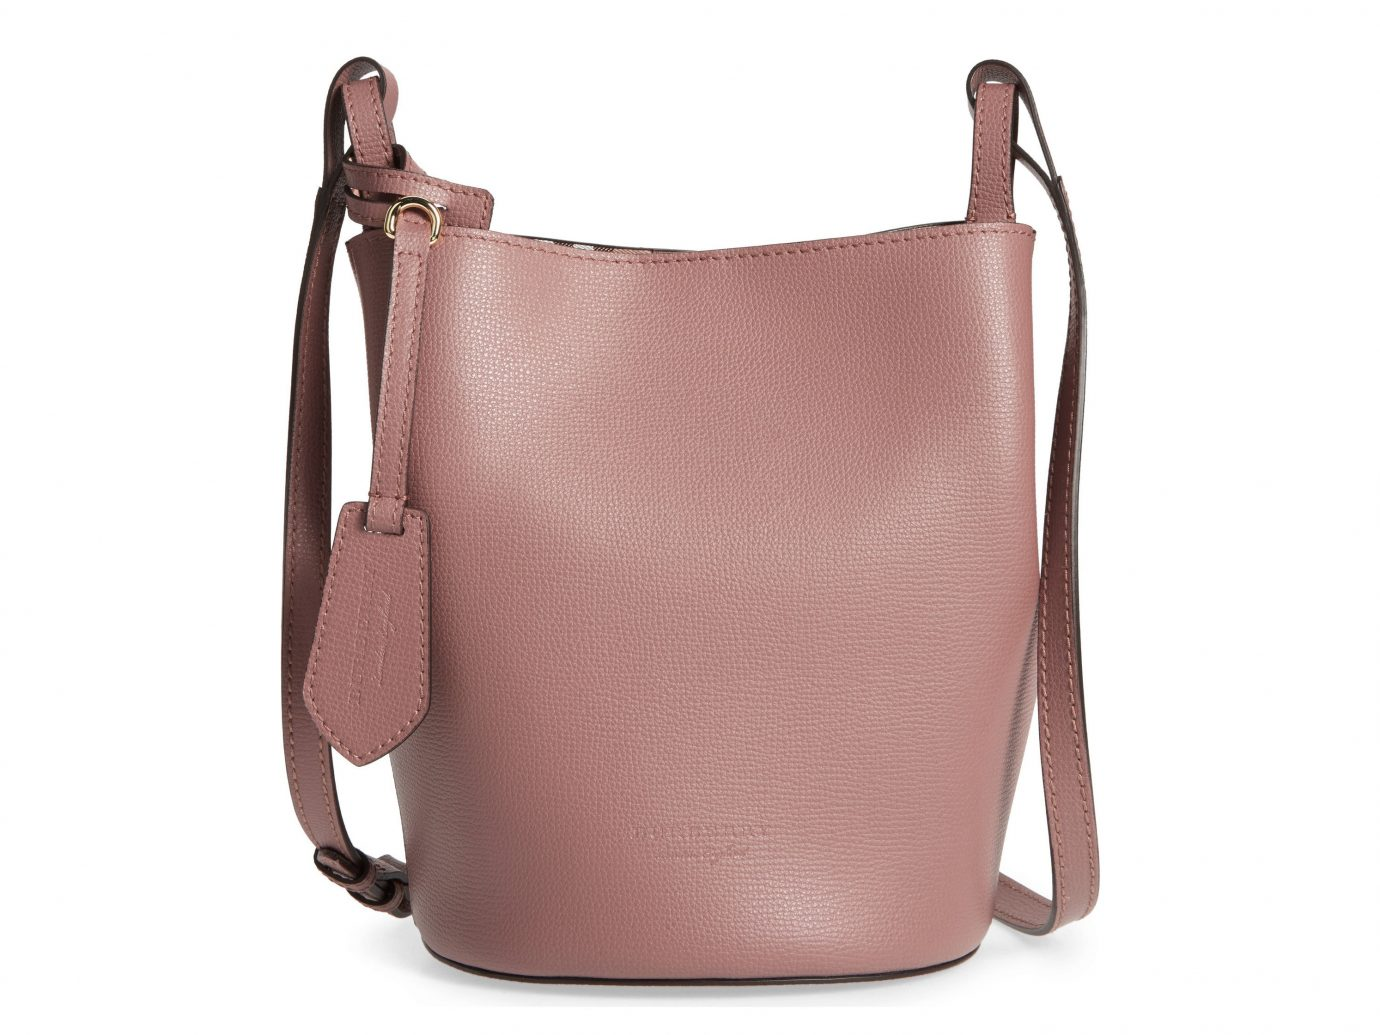 Style + Design Travel Shop bag pink shoulder bag accessory brown leather handbag fashion accessory product product design beige peach case